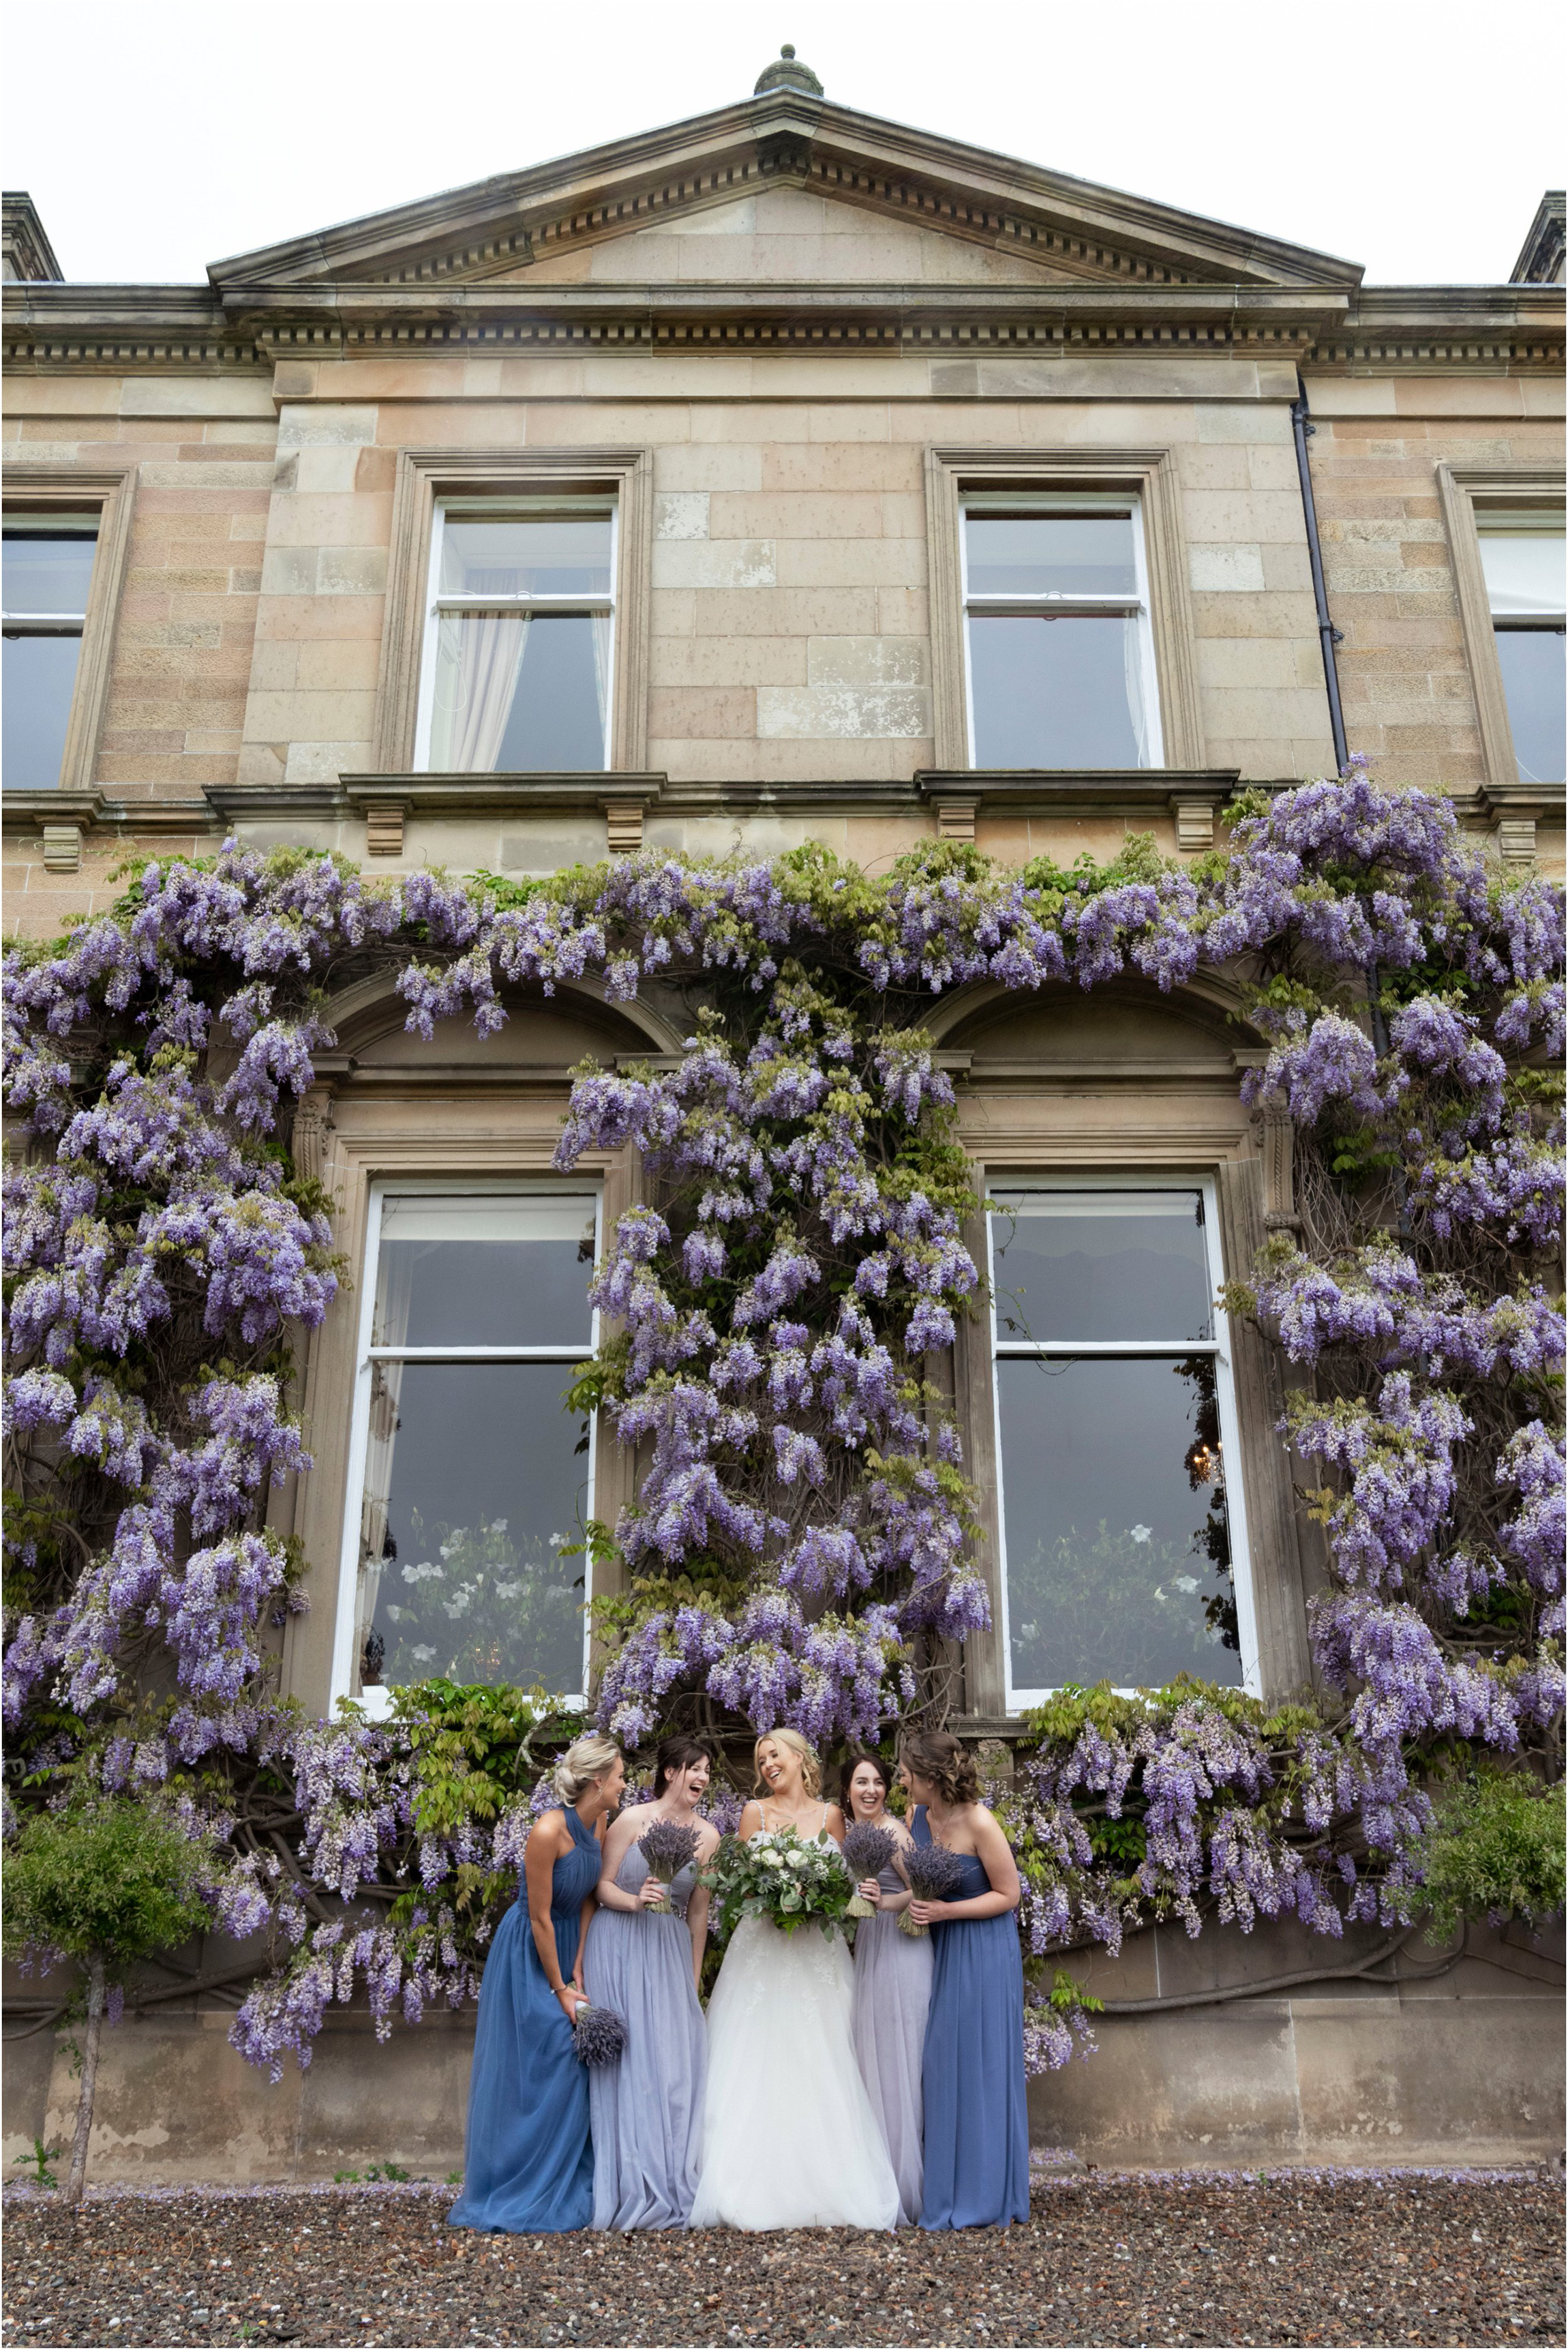 ©FianderFoto_Scotland Wedding Photographer_Errol Park Estate_Janine_Karl_106.jpg